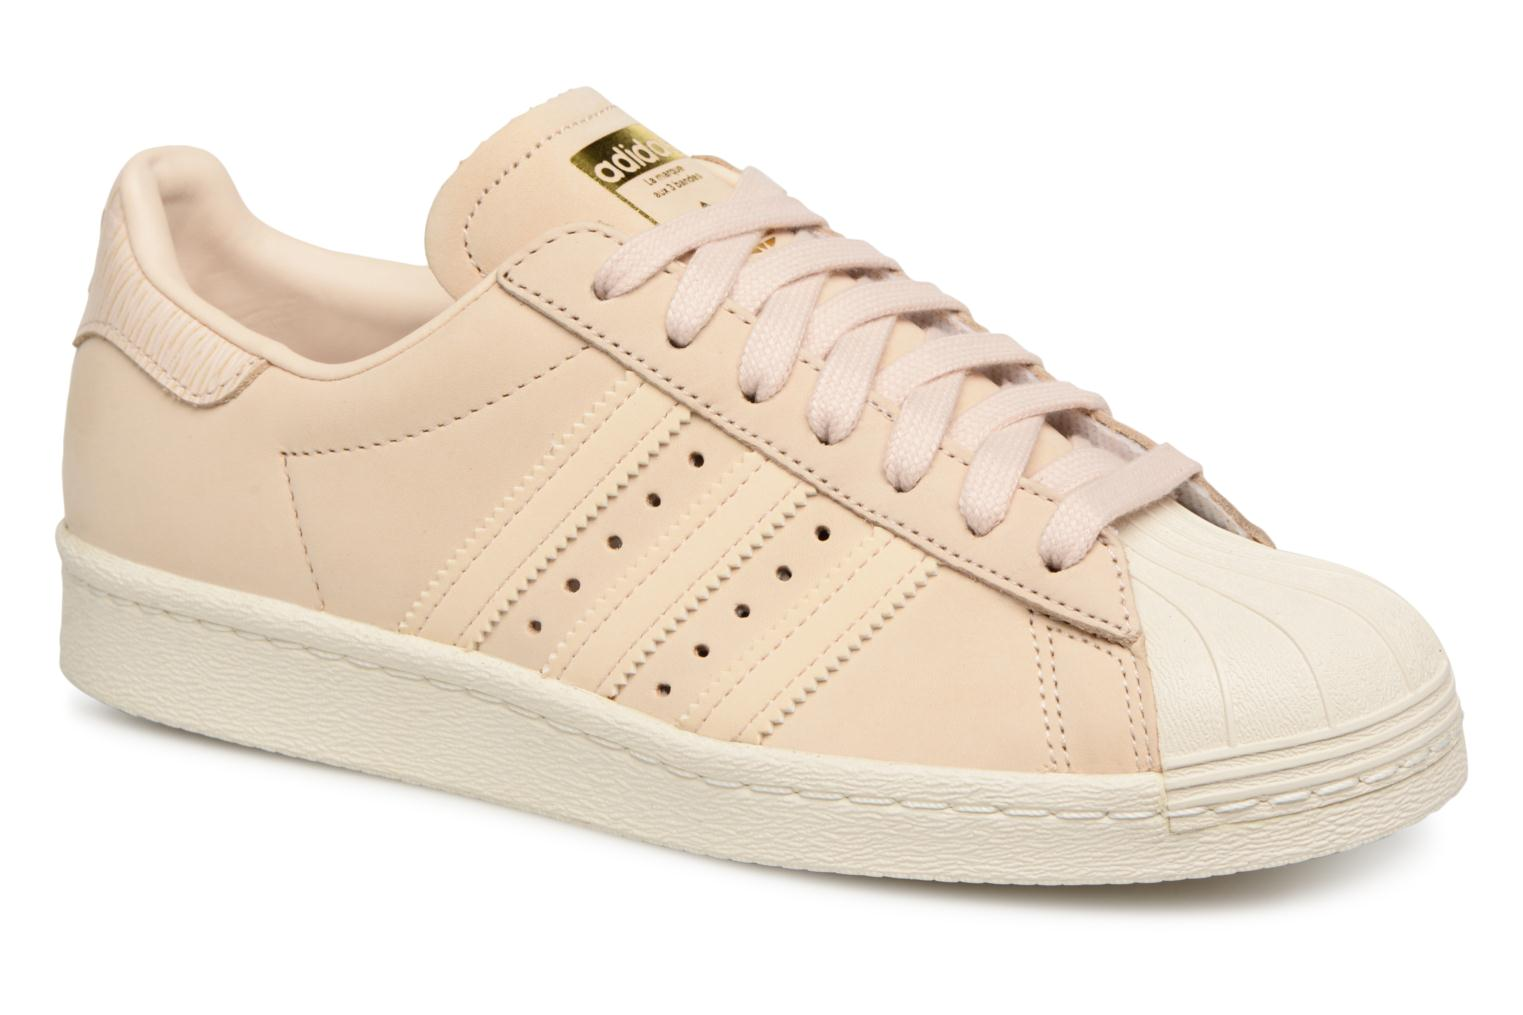 Adidas Originals Superstar 80S W (Beige) - Baskets en Más cómodo Remise de marque